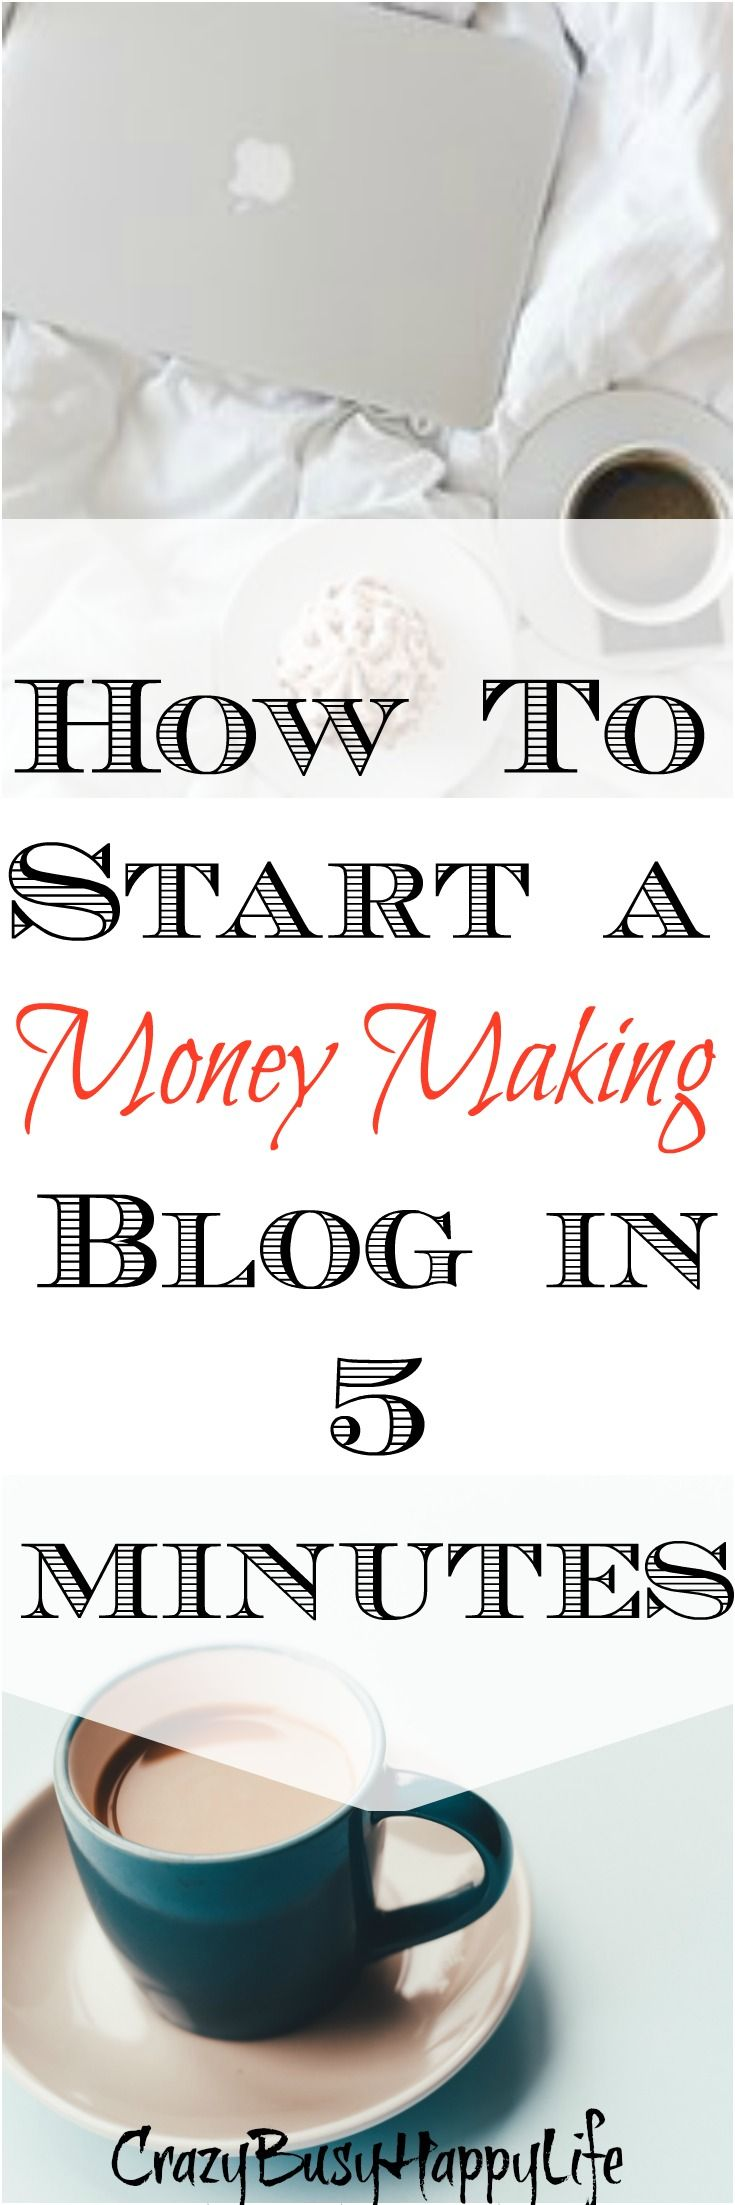 How to Make Money Selling Crafts: 10 Steps (with Pictures)